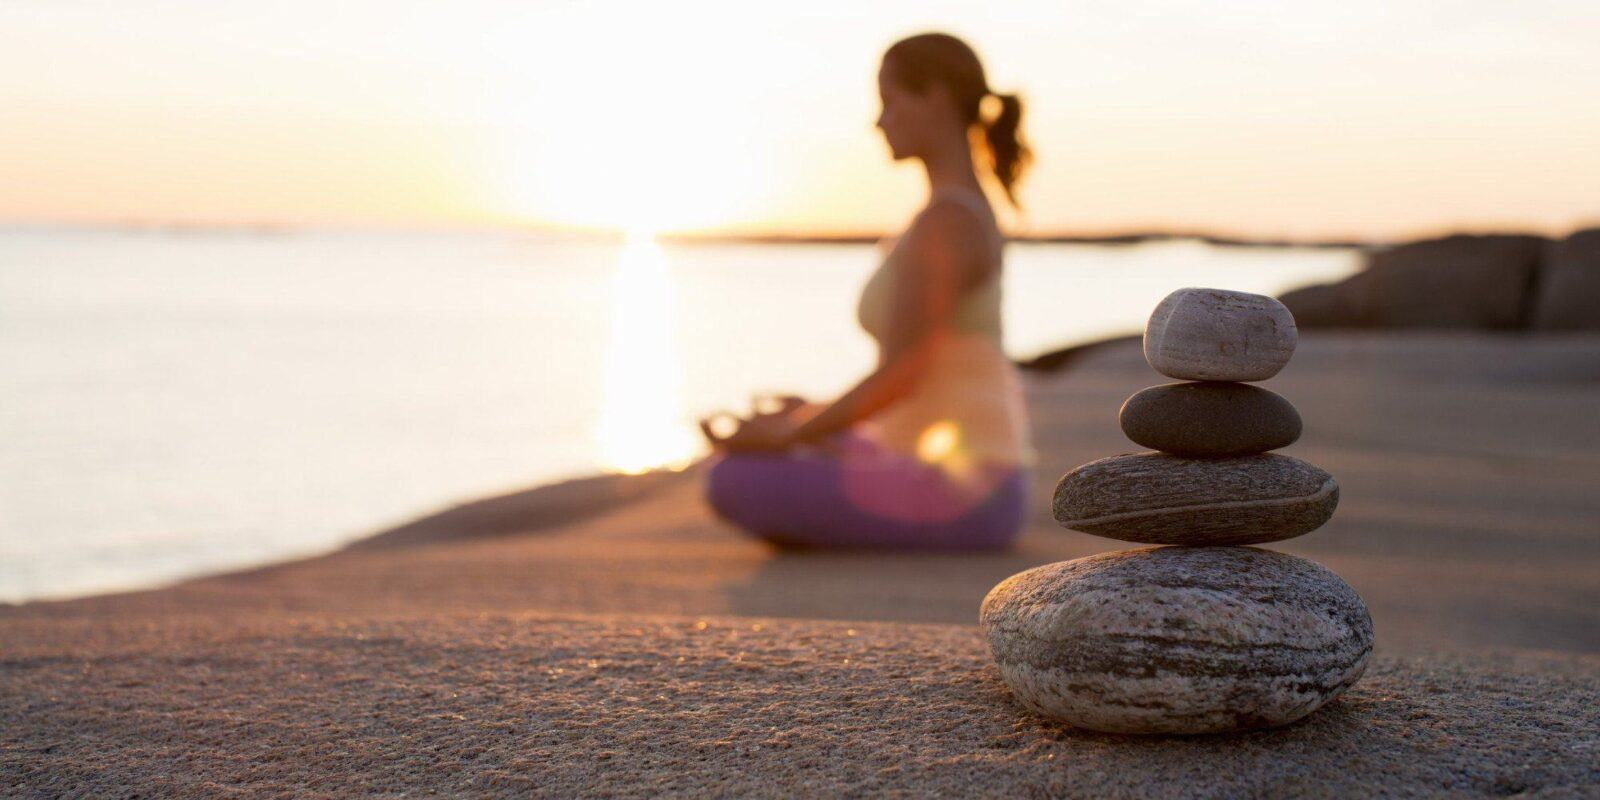 Side view of woman sitting in lotus position on lakeshore with focus on stack of stones